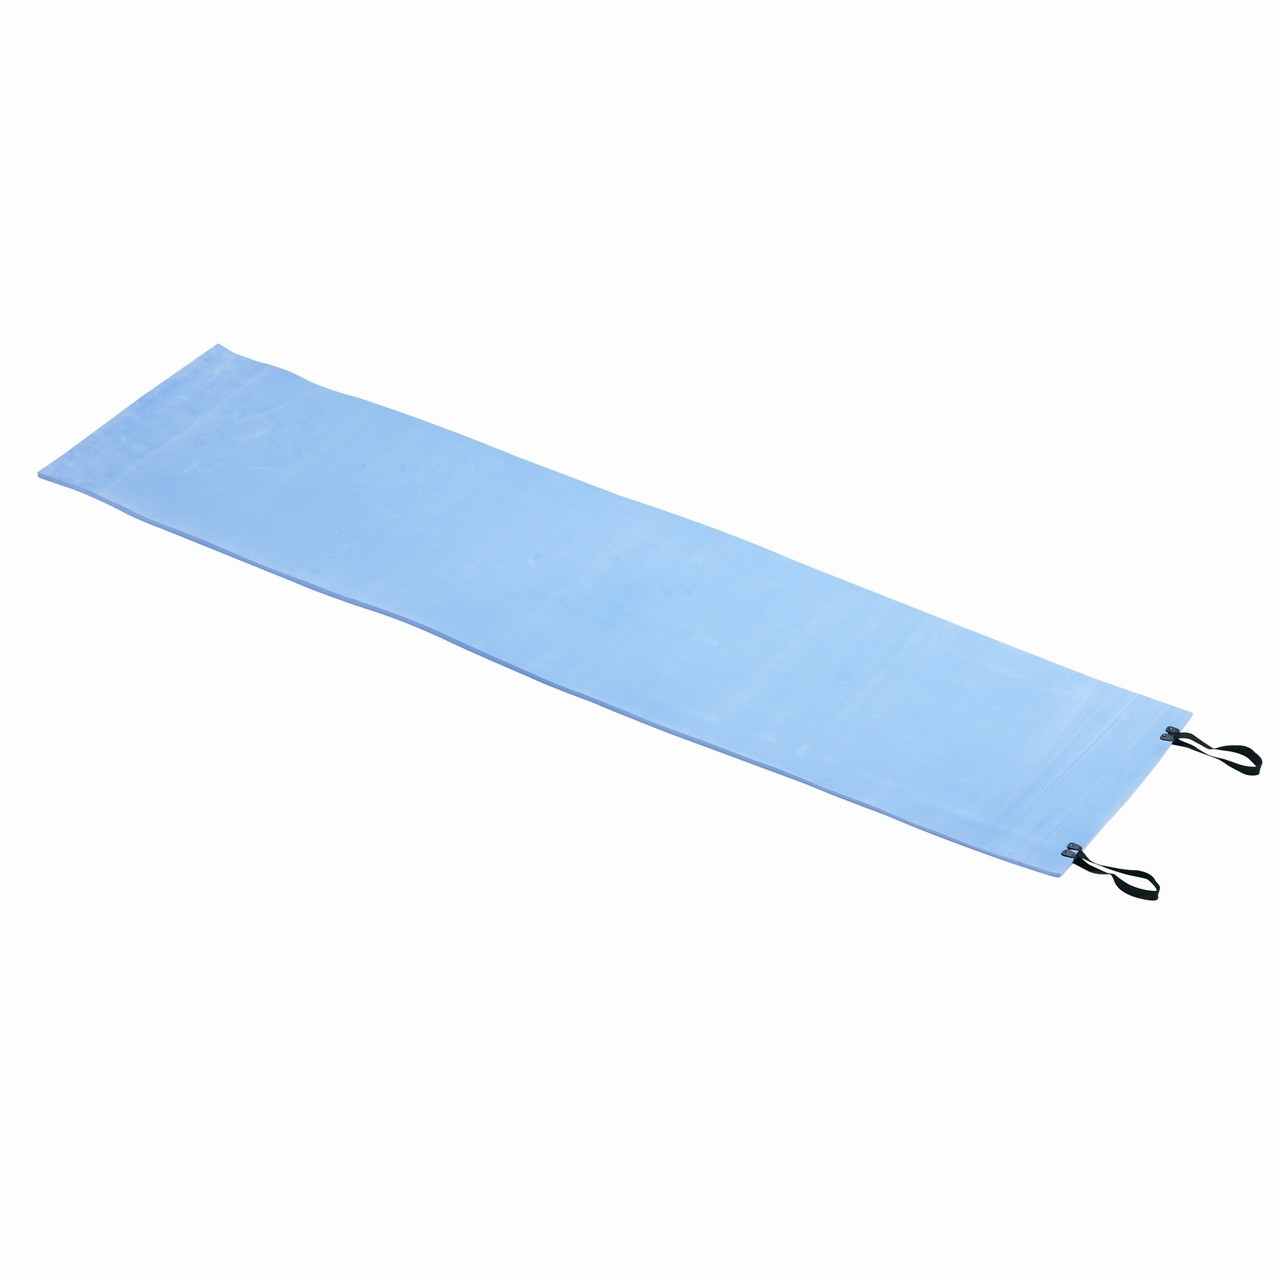 Wenzel Camp Pad, blue, laying completely flat fully extended